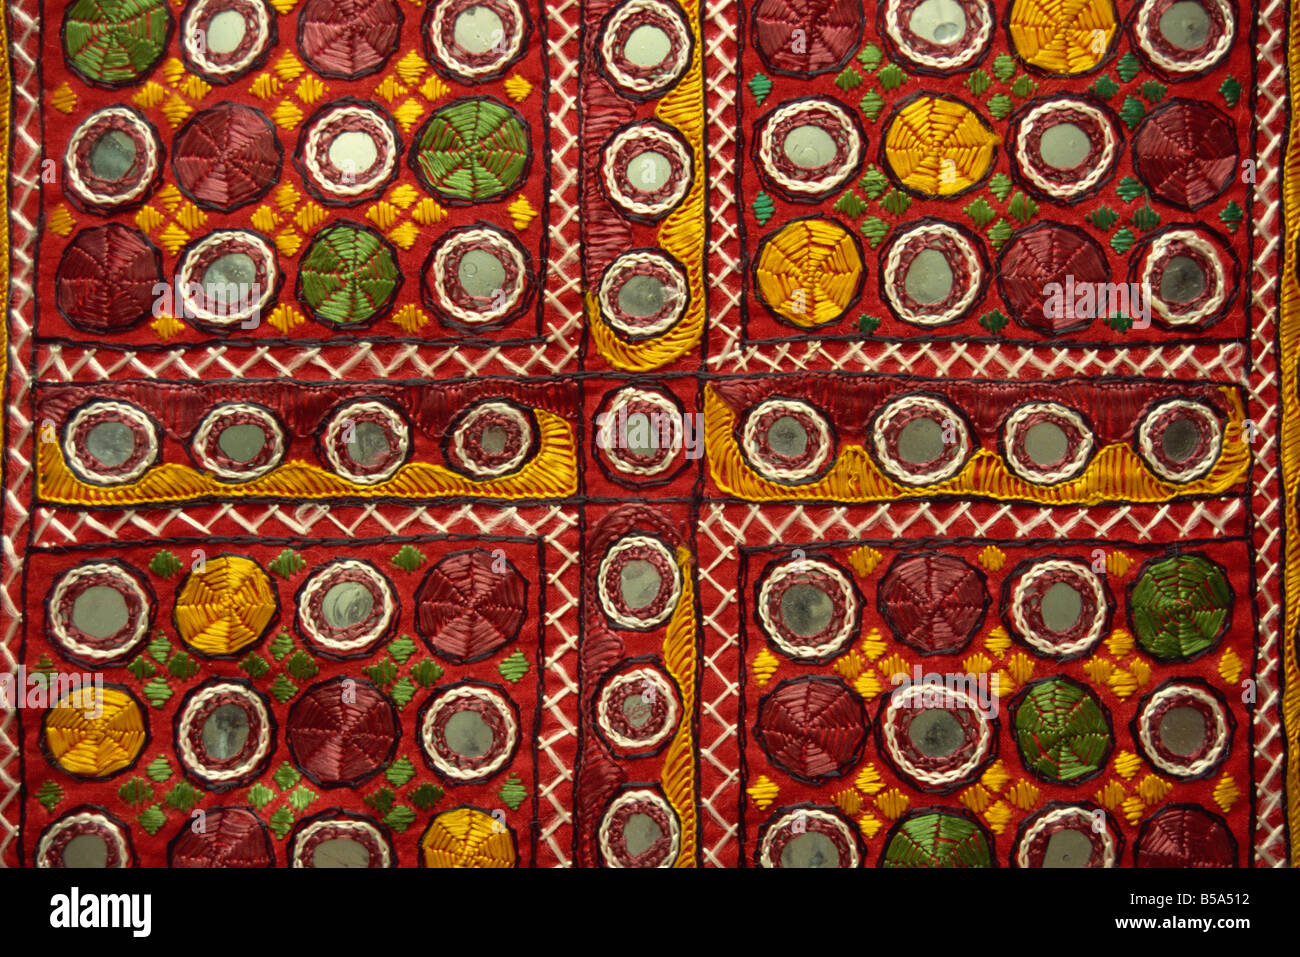 Close-up of Rajasthani embroidery, Rajasthan state, India Stock Photo